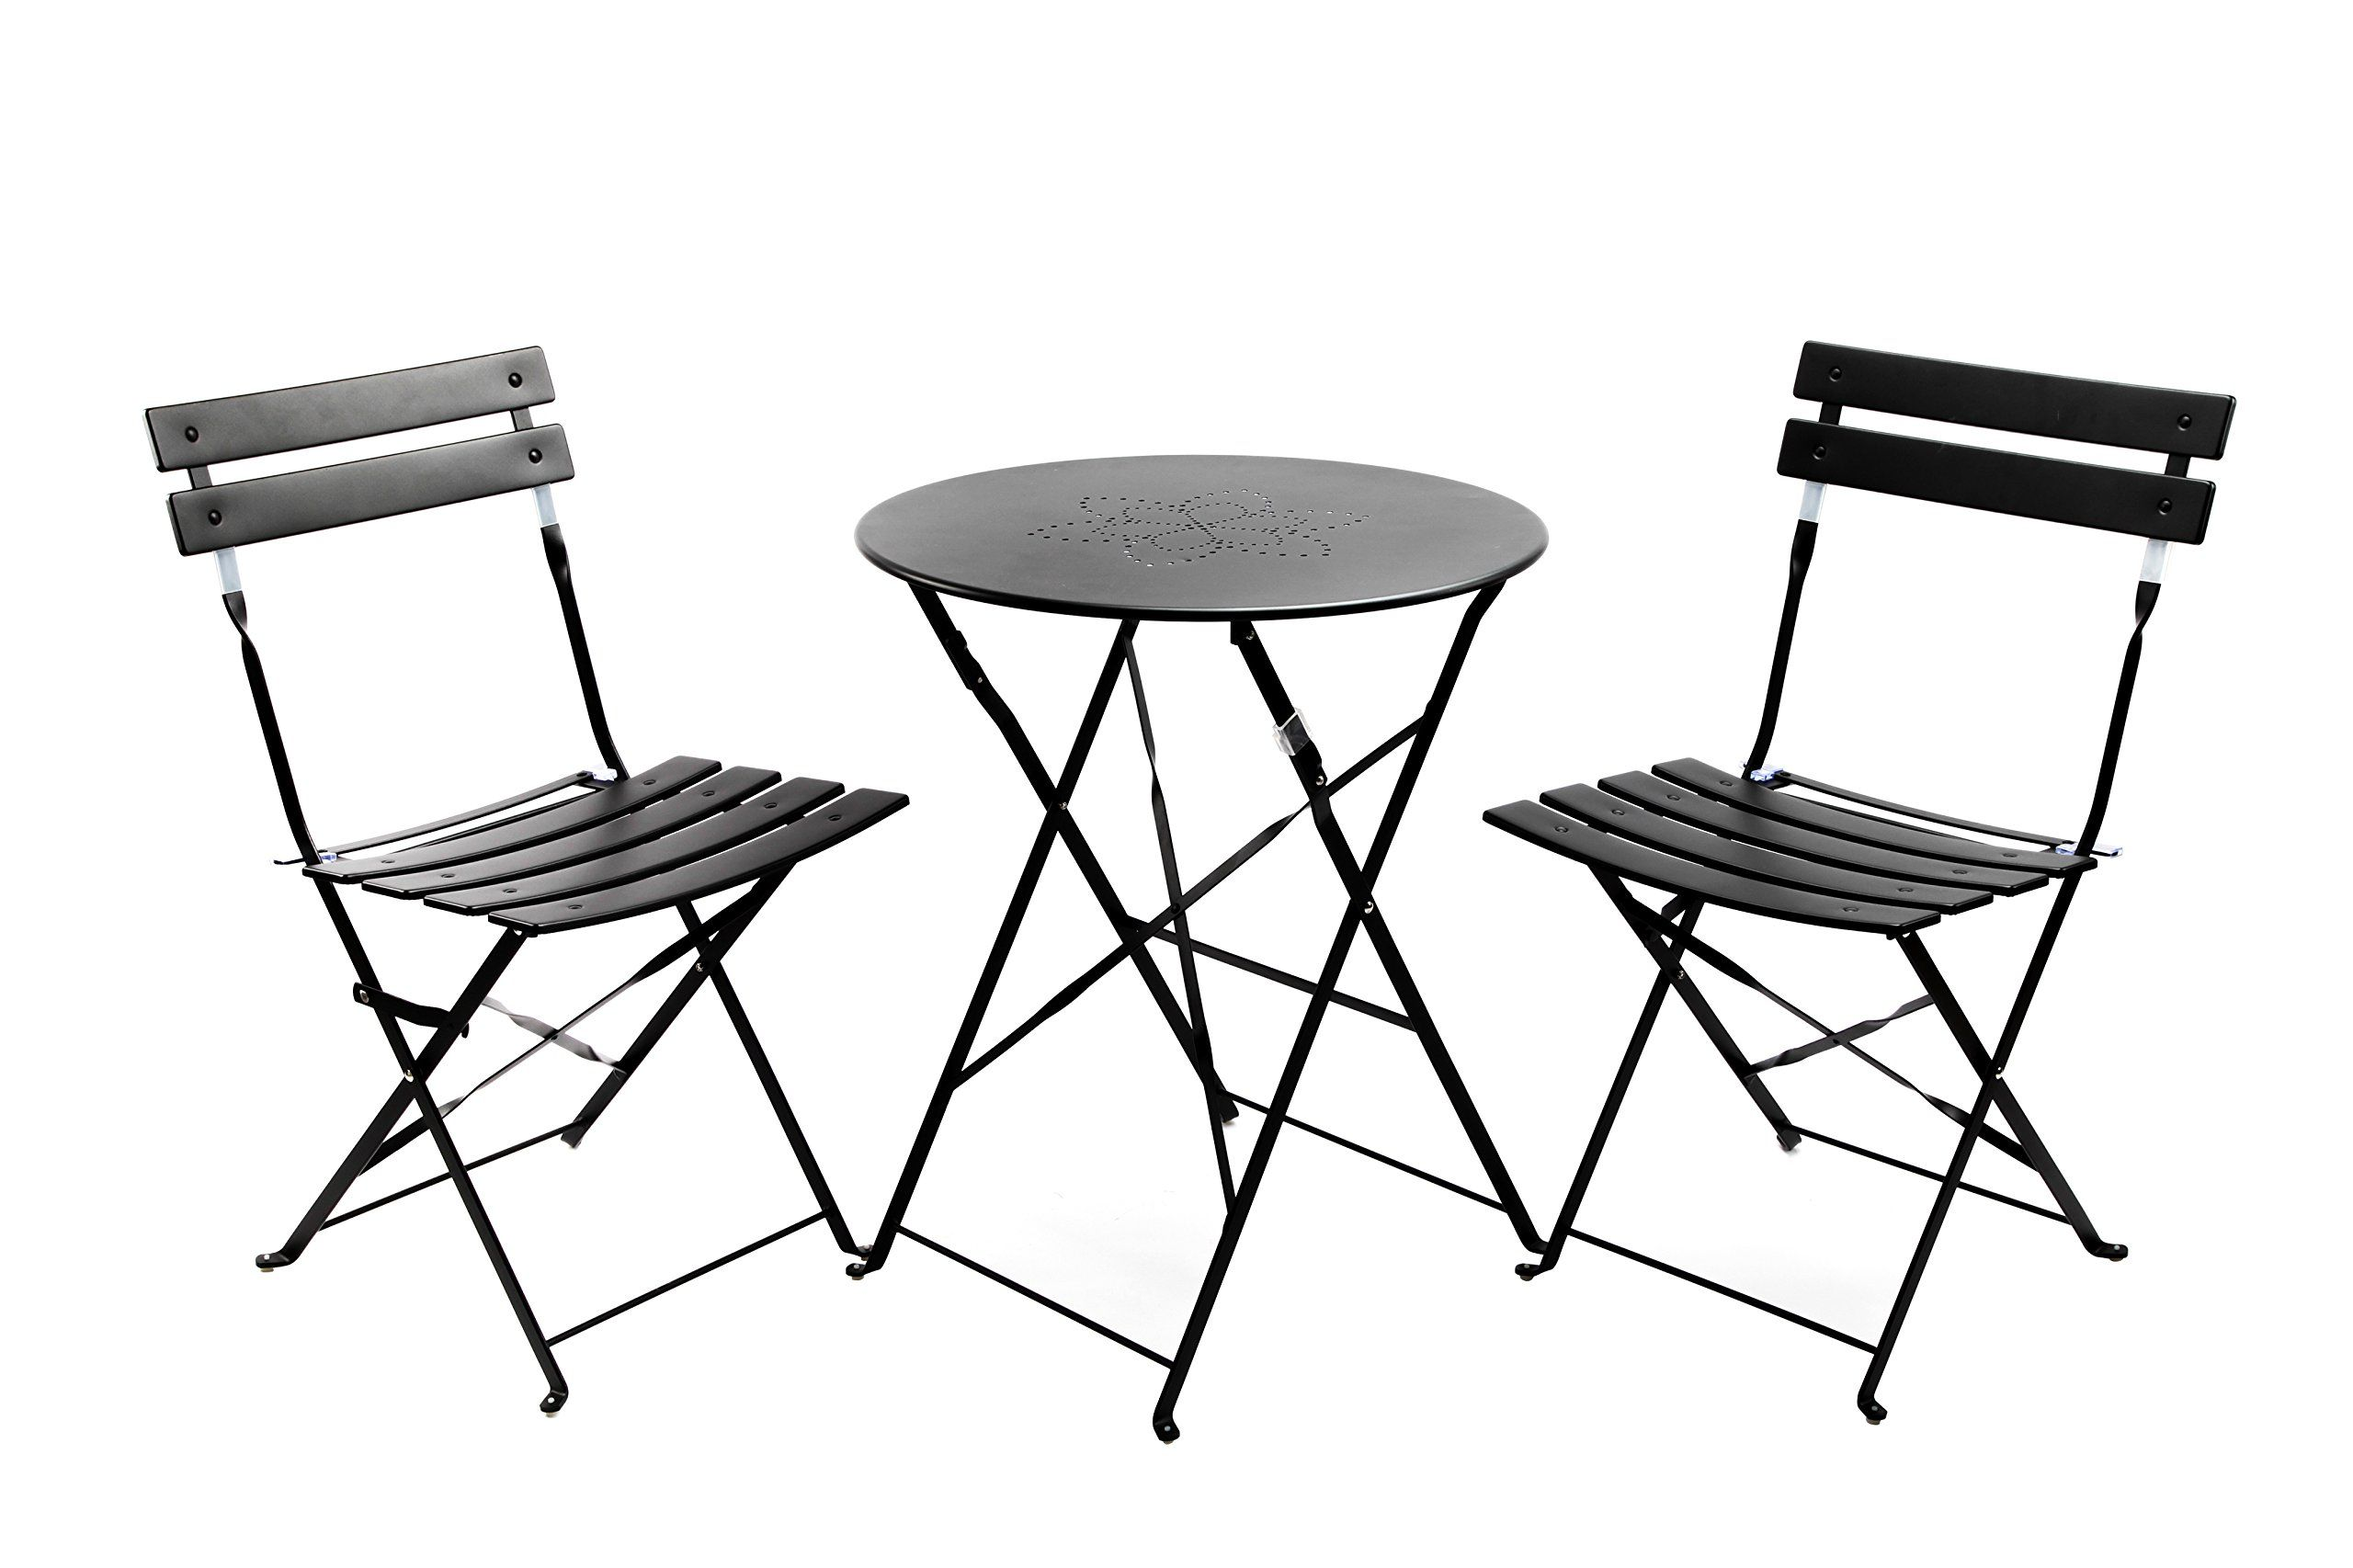 Finnhomy Slatted 3 Piece Outdoor Patio Furniture Sets Bistro Sets Steel Folding Table and Chair Set  sc 1 st  Pinterest & Finnhomy Slatted 3 Piece Outdoor Patio Furniture Sets Bistro Sets ...